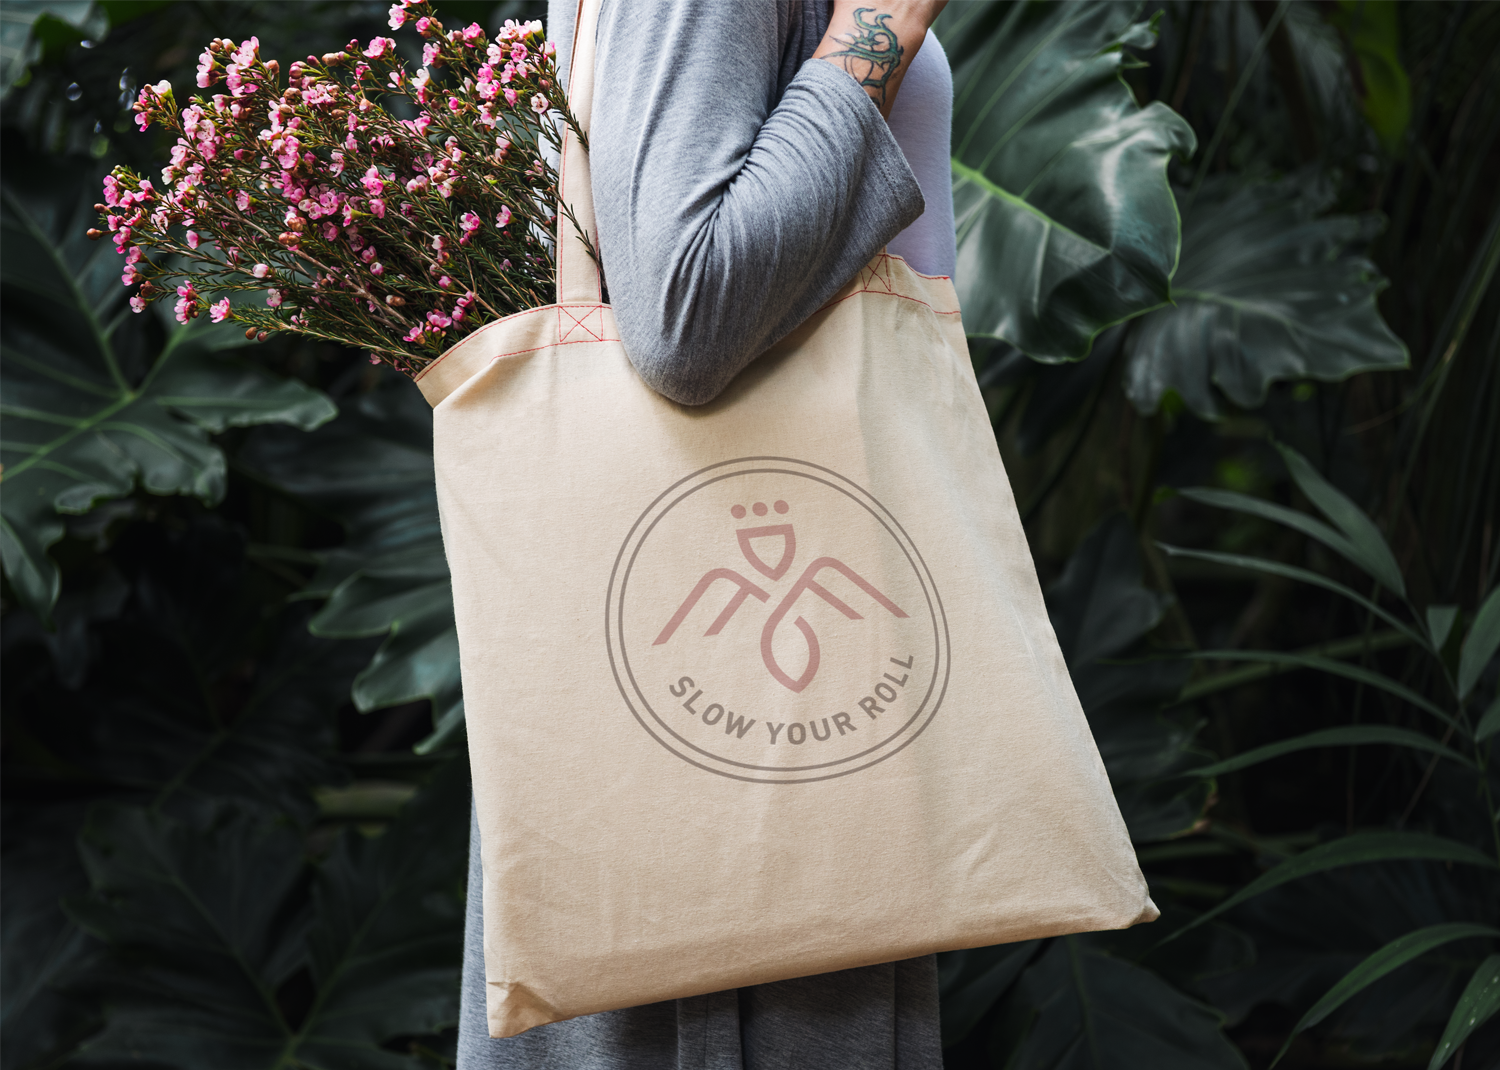 Mama Flowers visual identity tote bag design